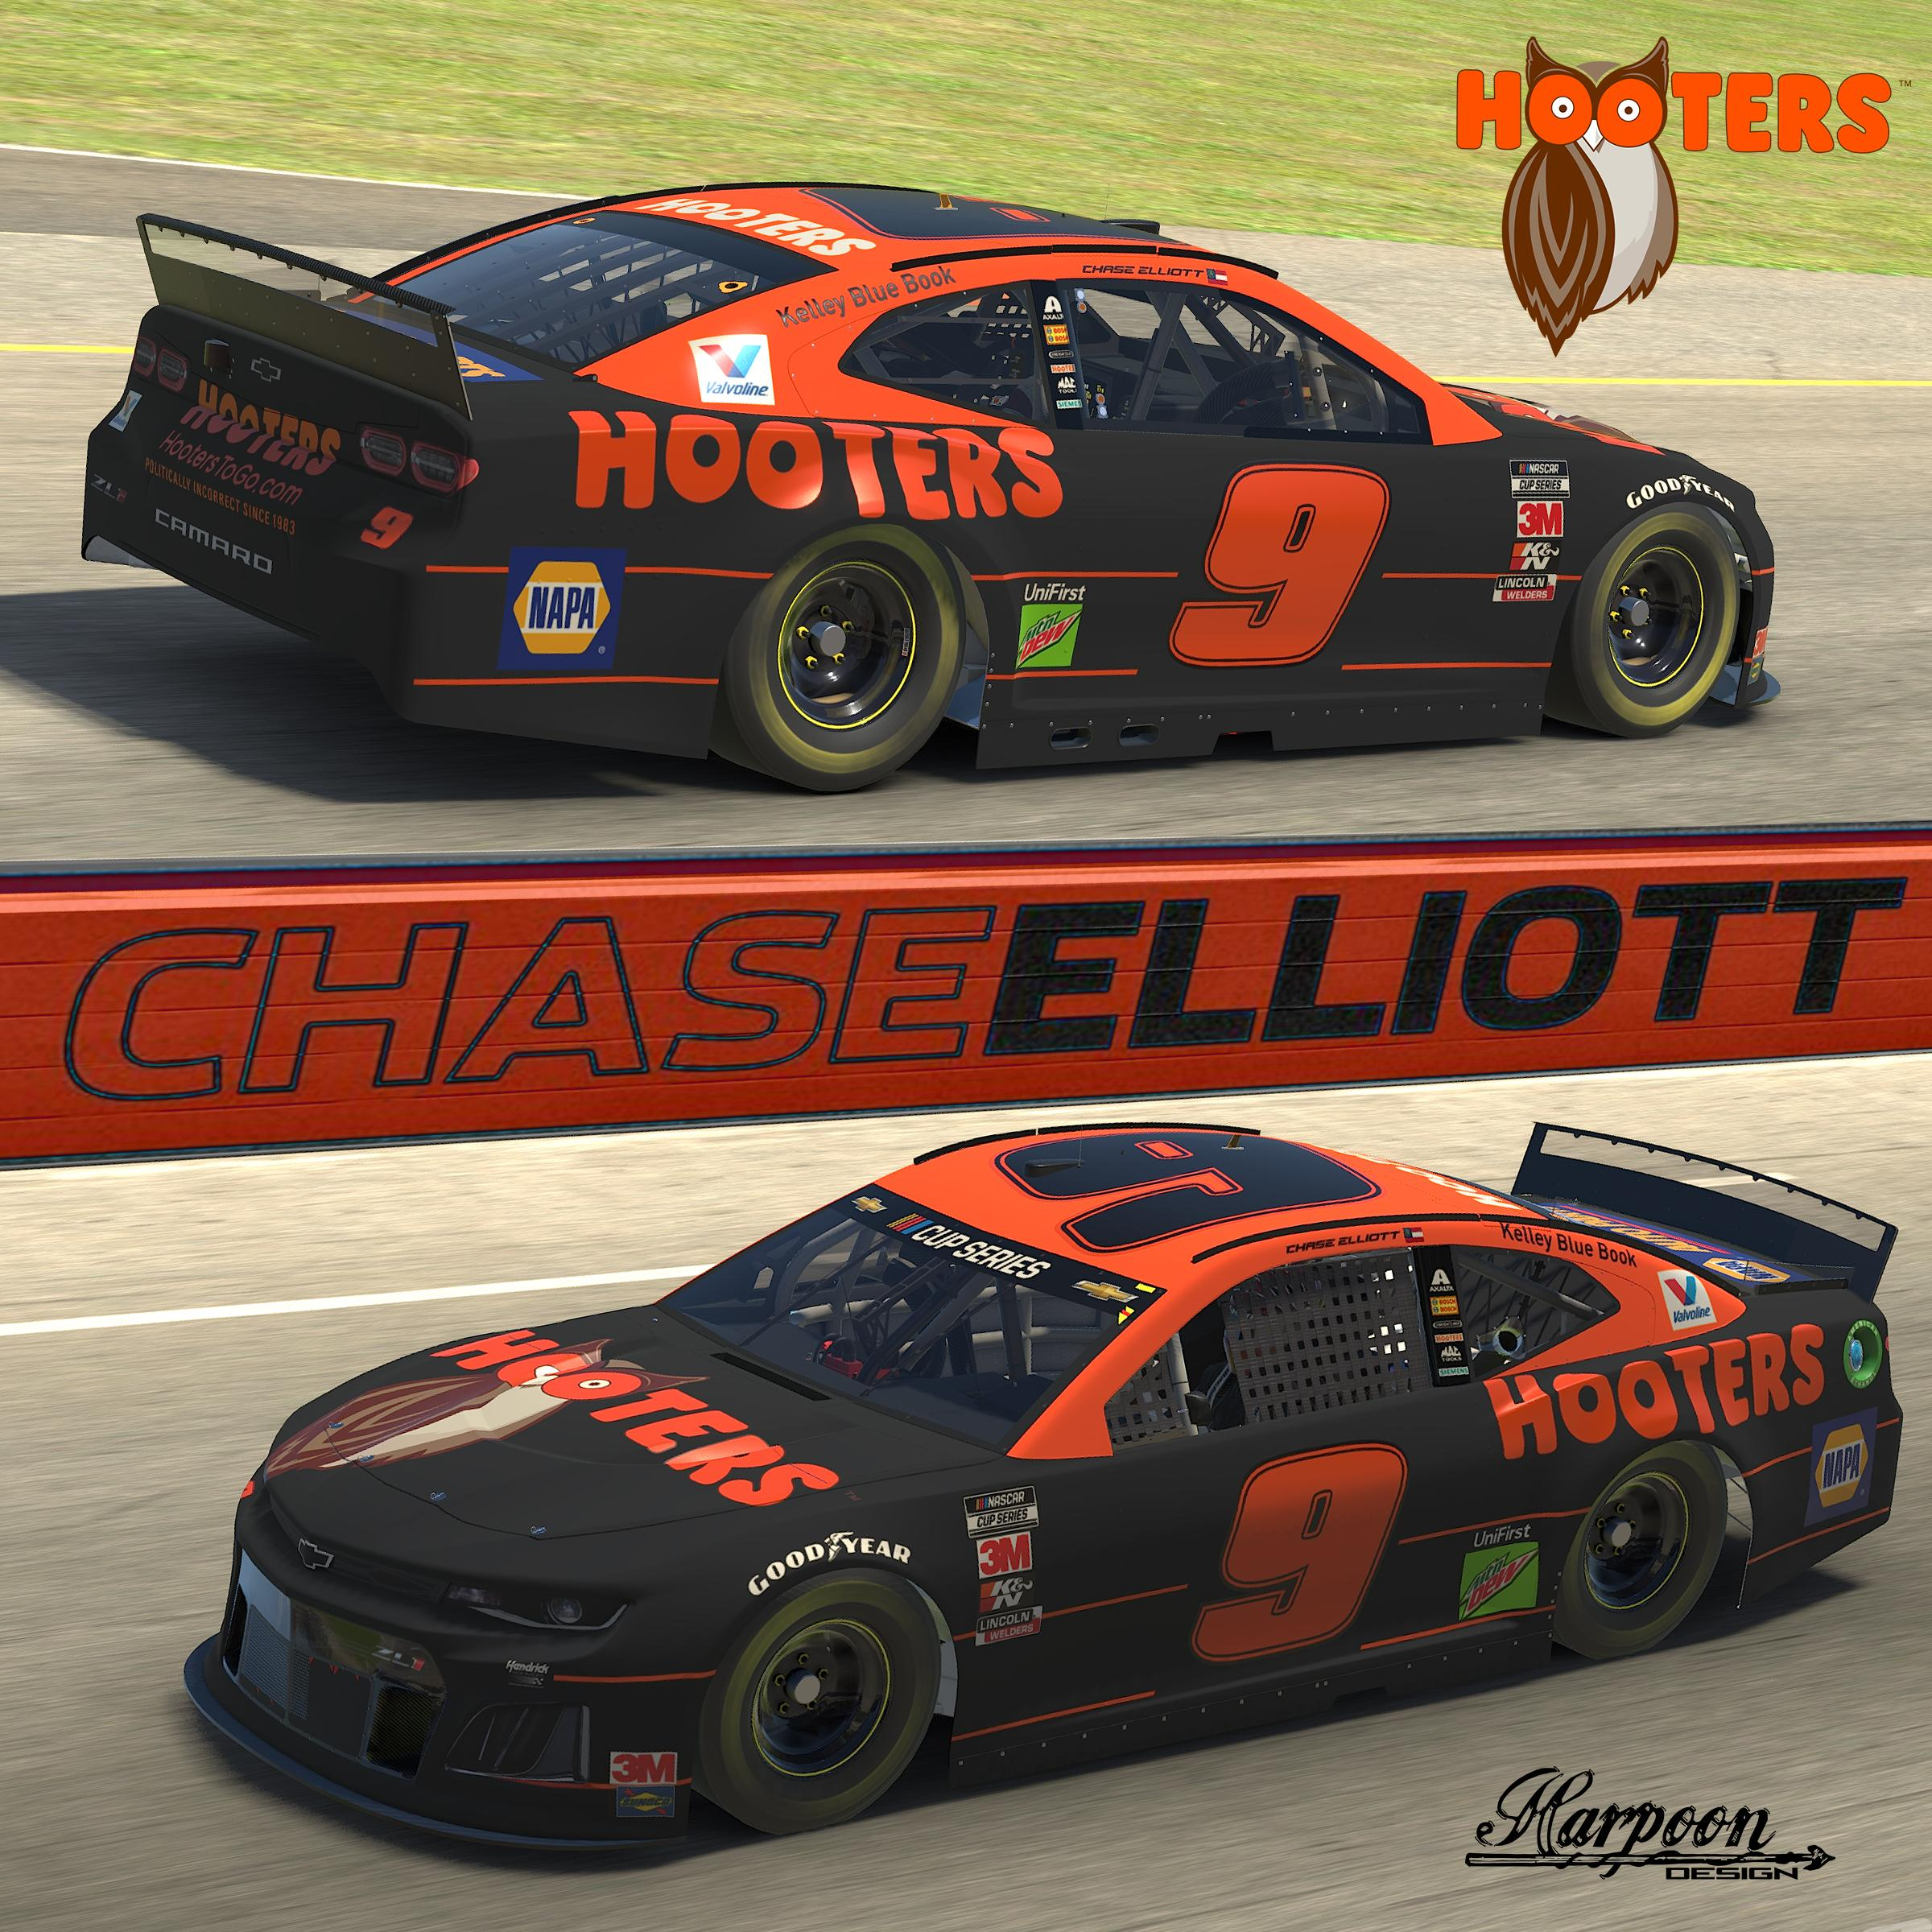 Preview of 2020 Chase Elliot Hooters No Num by Brantley Roden